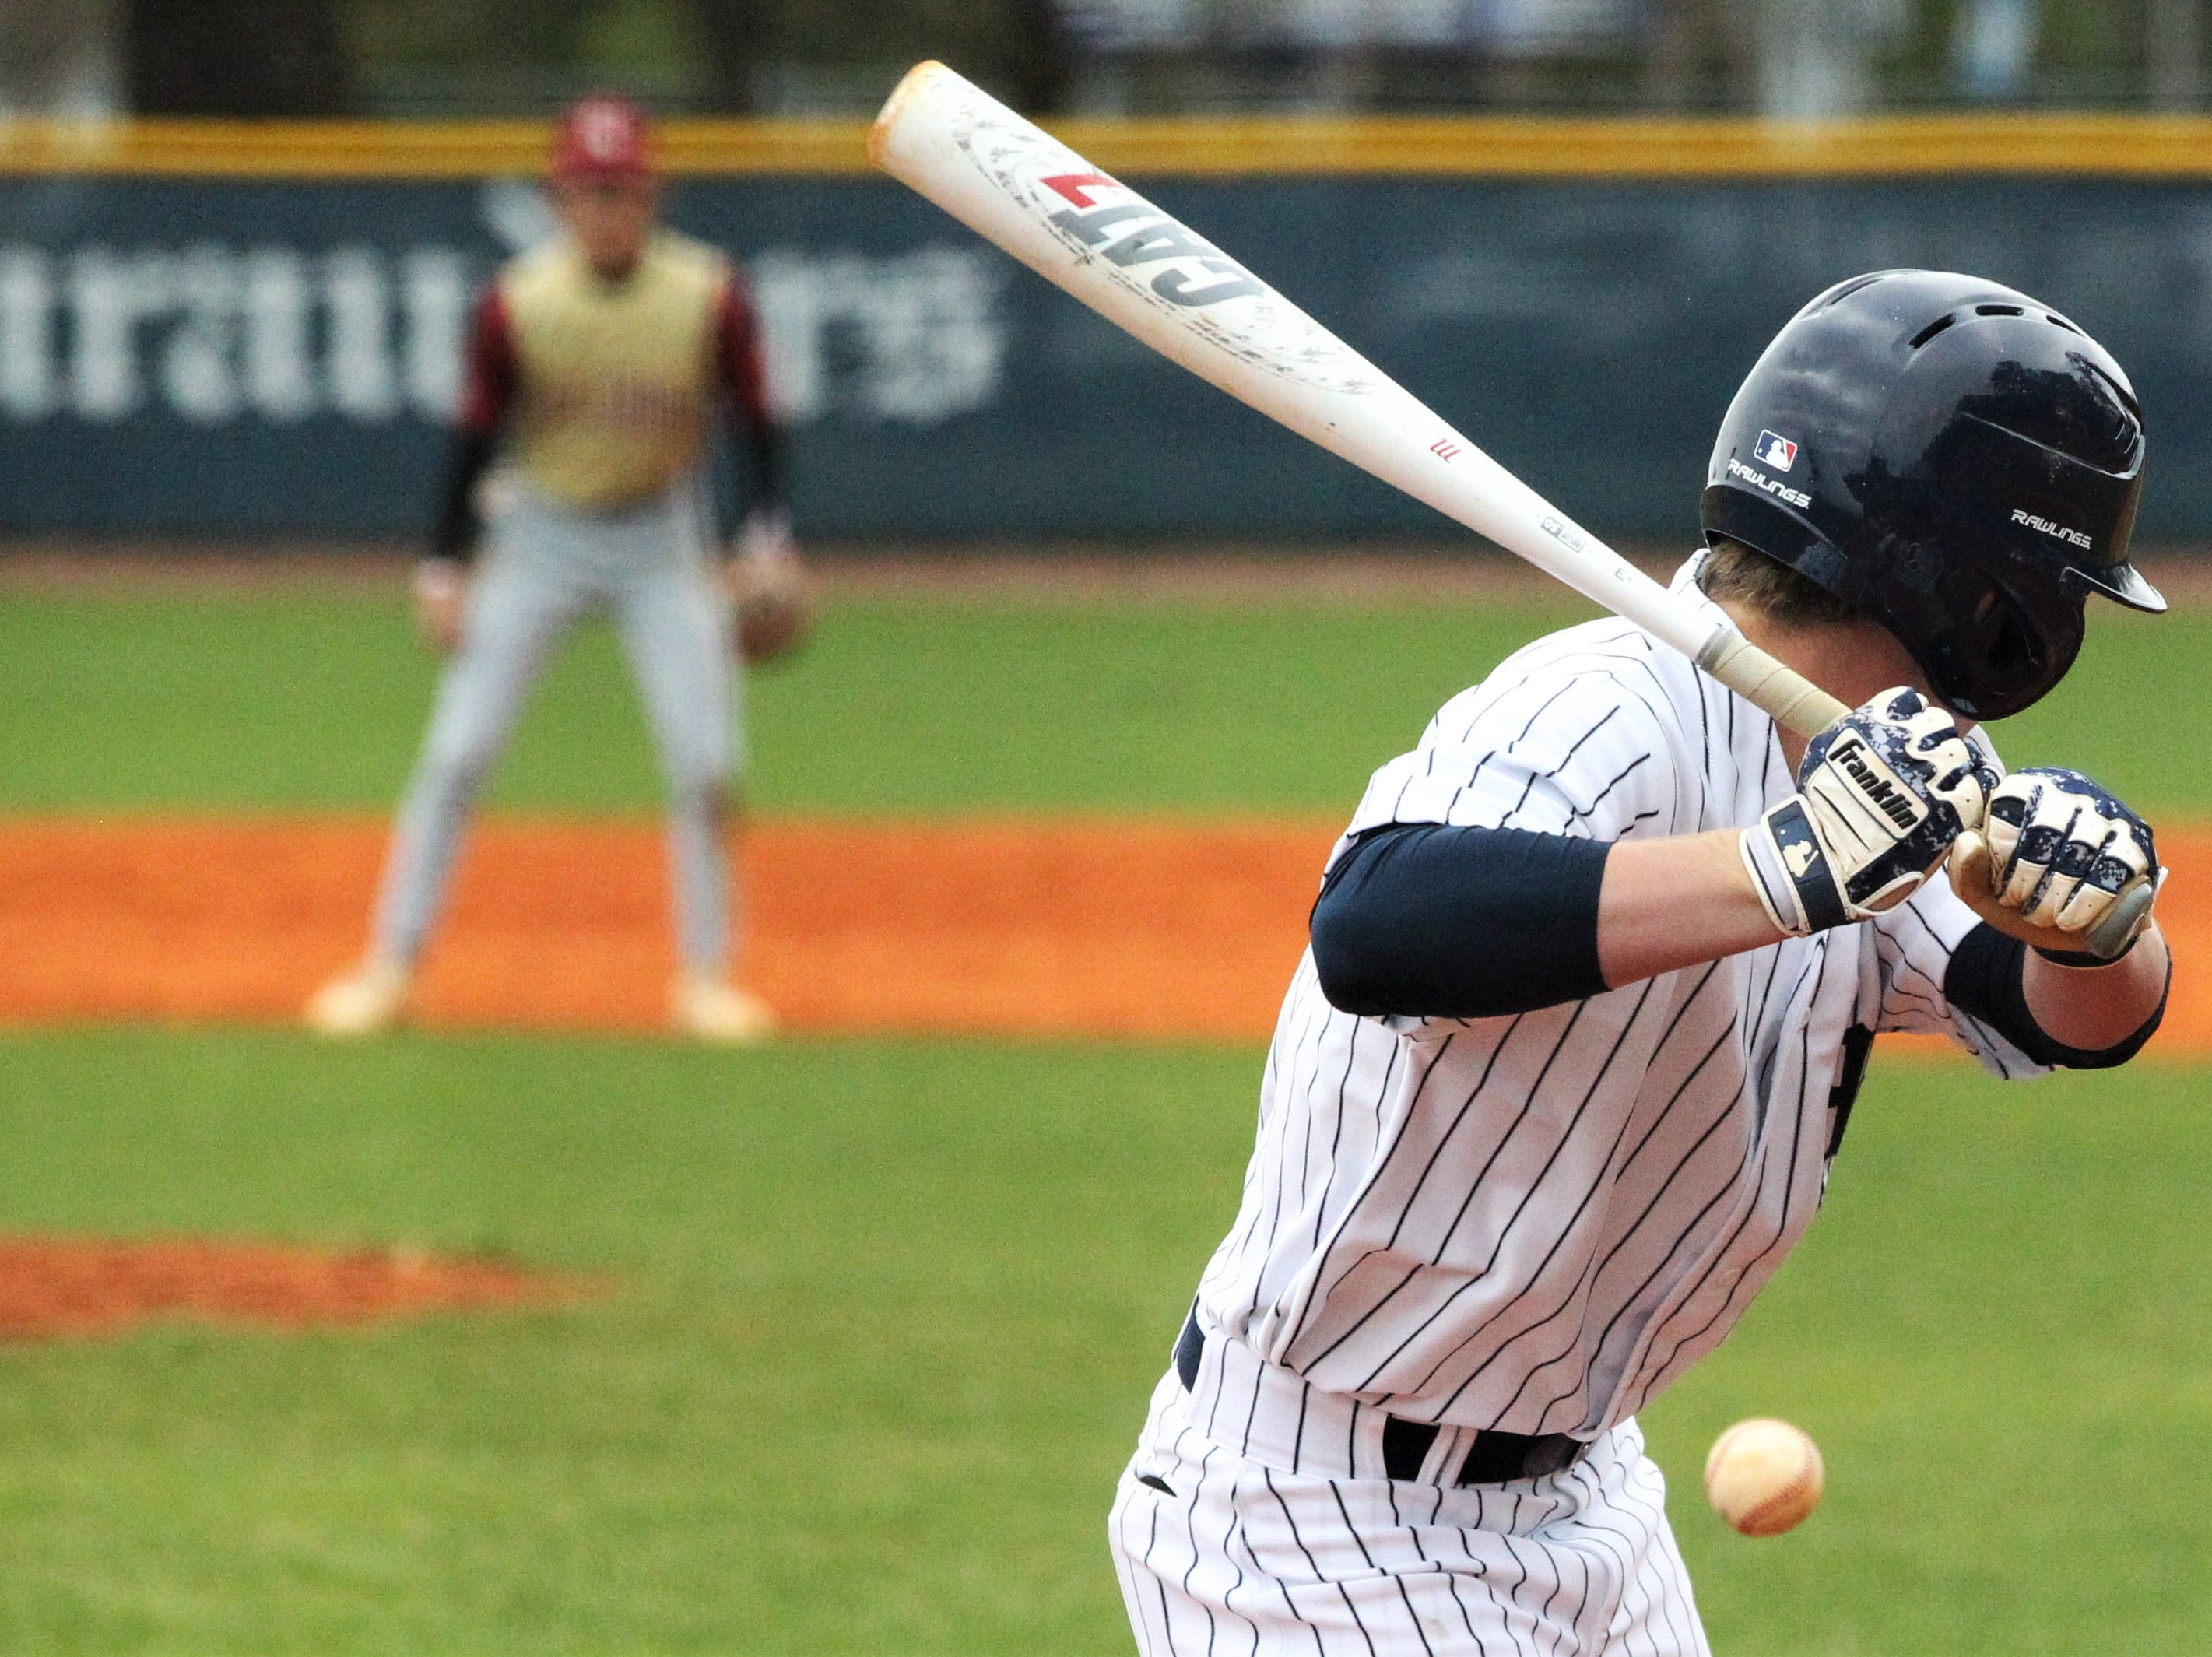 Maclay's Dylan Vielhauer bats as Liberty County's baseball team went on the road to beat Maclay 8-2 on Saturday, March 16, 2019. The Bulldogs played their first game following their head coach Corey Crum's tragic death six days ago.